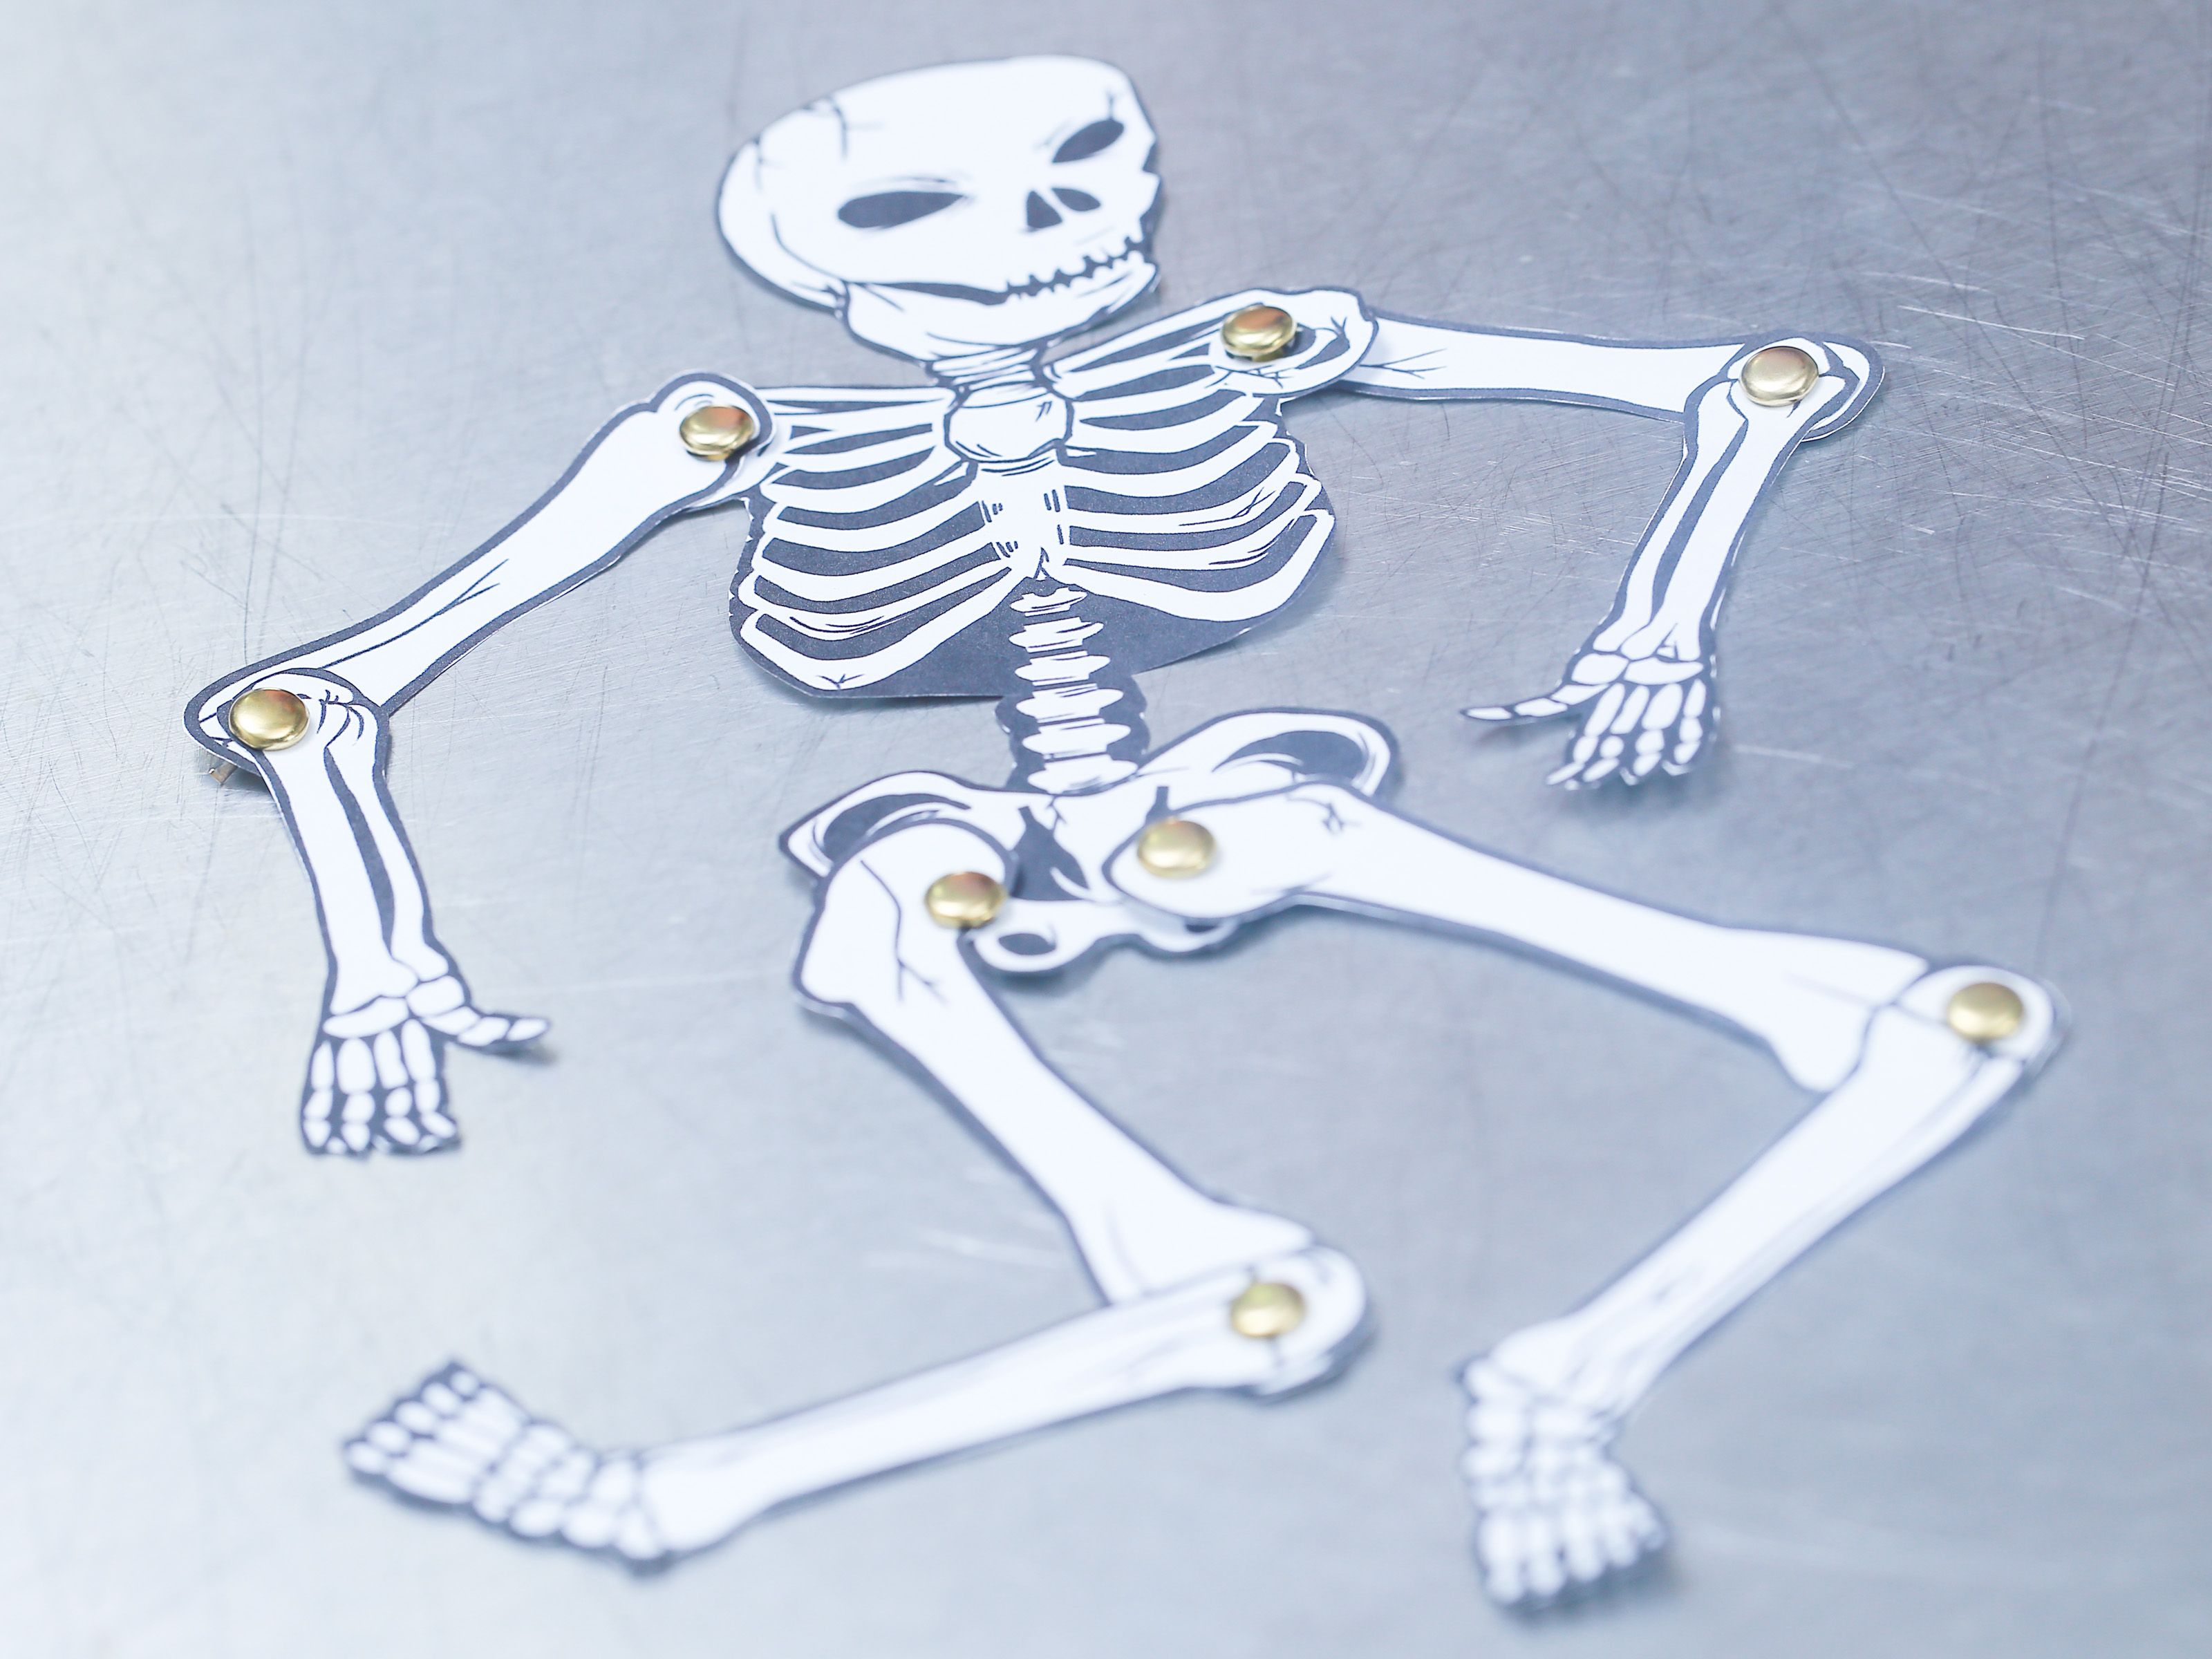 Make A Human Skeleton Out Of Paper